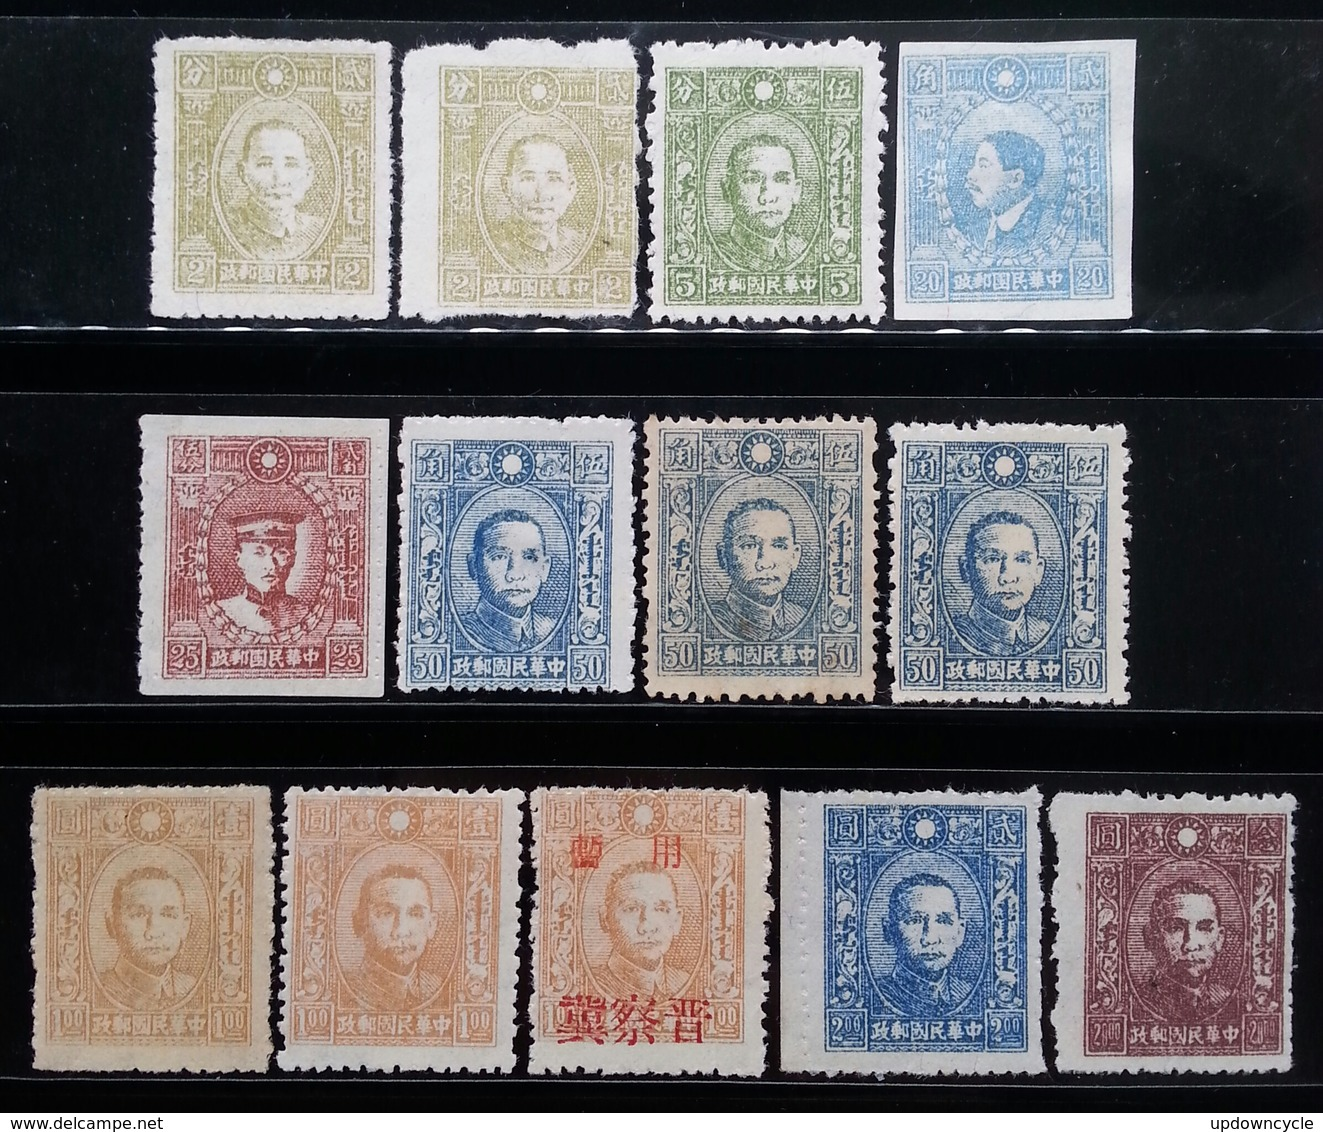 China 1945 Mengkiang Unissued Stamps 2c-$20 Mint With Gum Mixed Conditions - 1941-45 Northern China